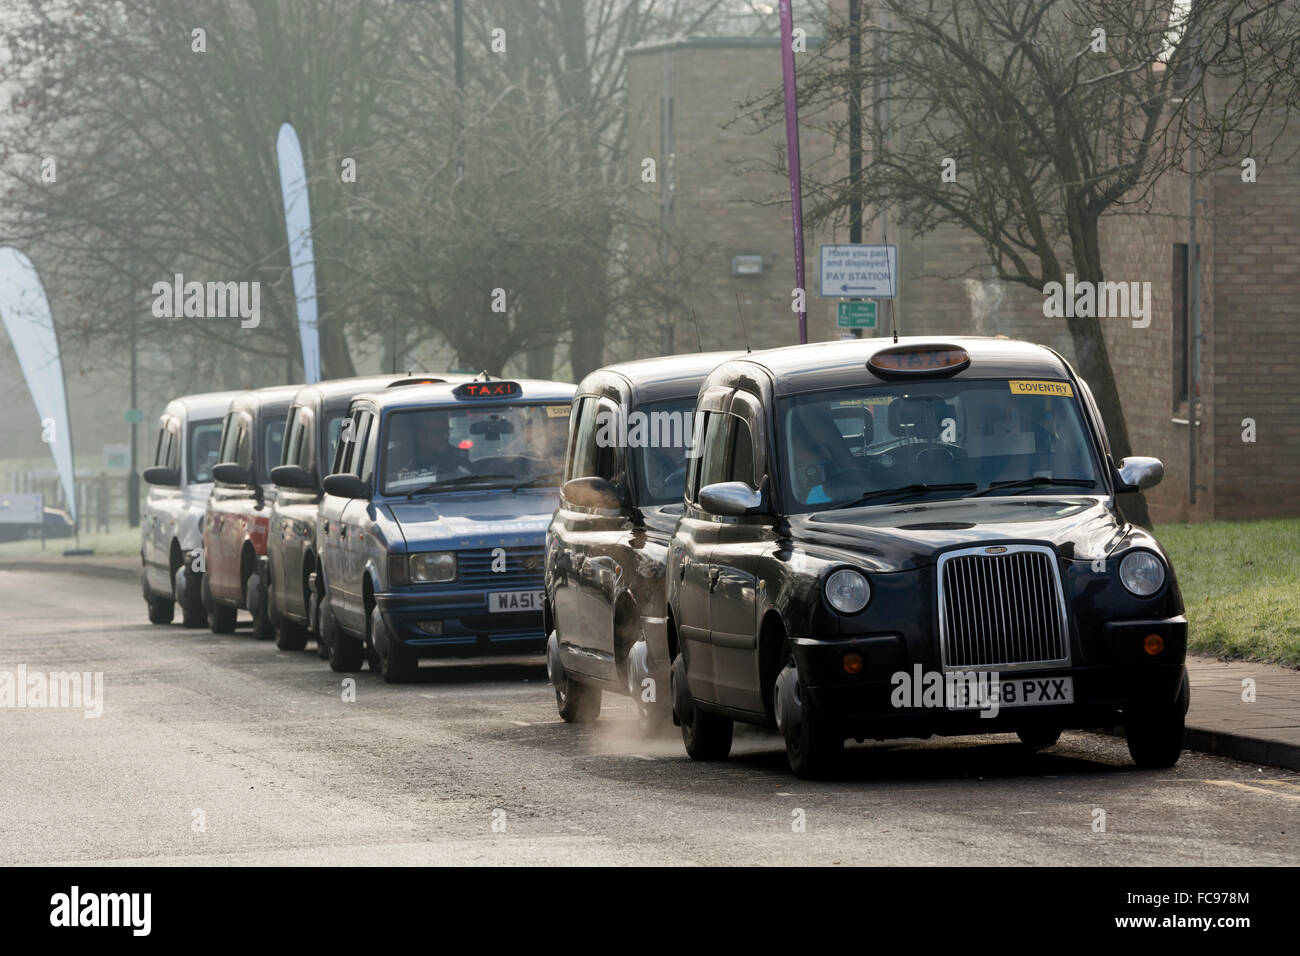 A line of taxis at Warwick University, UK - Stock Image